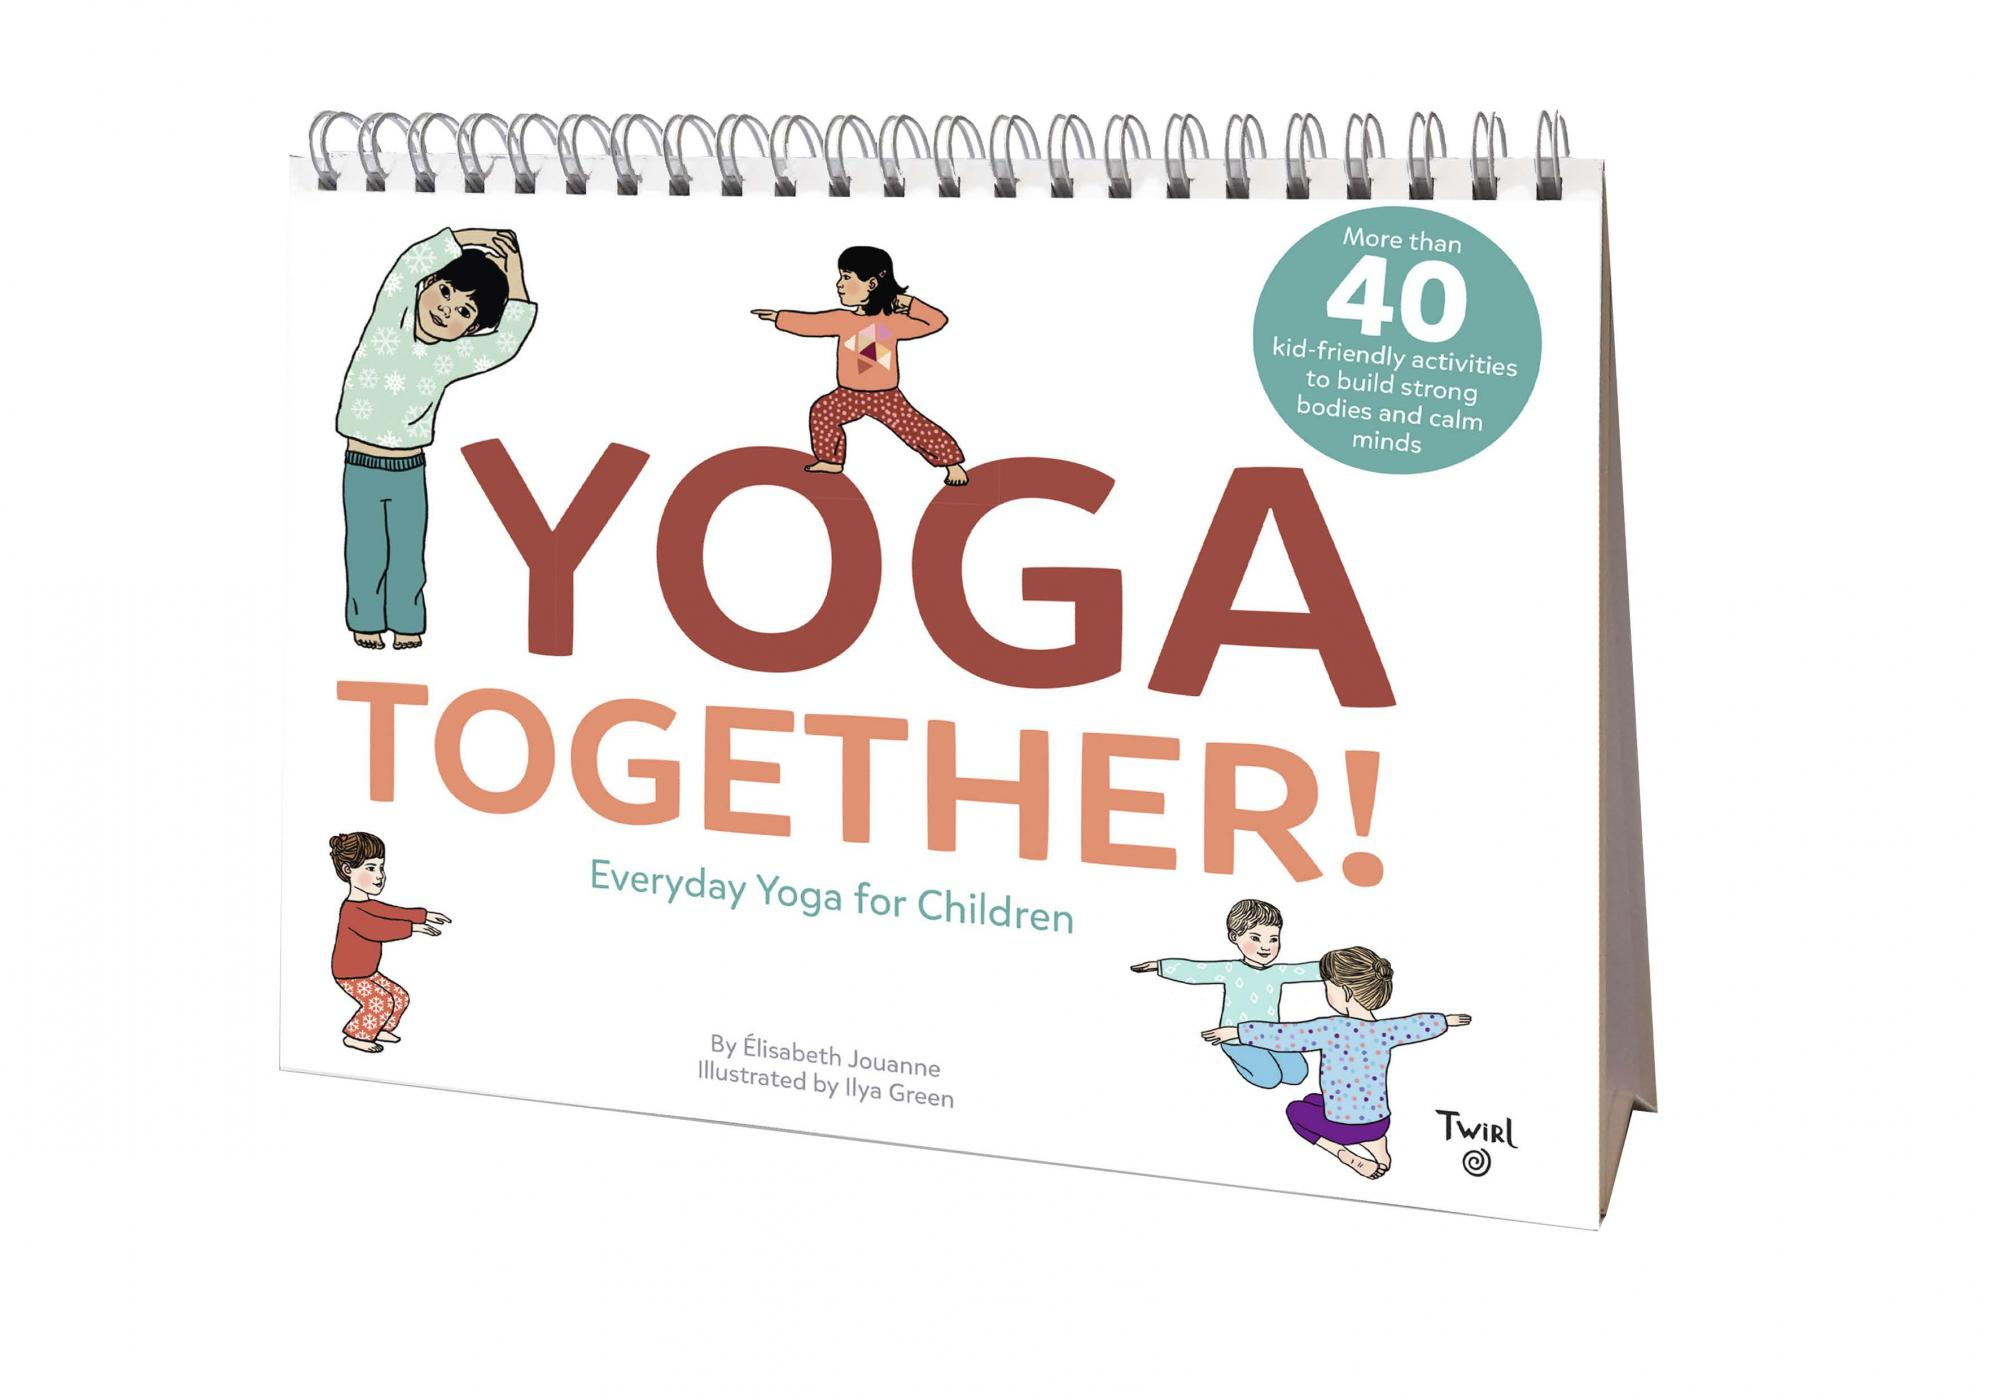 Yoga Together! (By Élisabeth Jouanne)